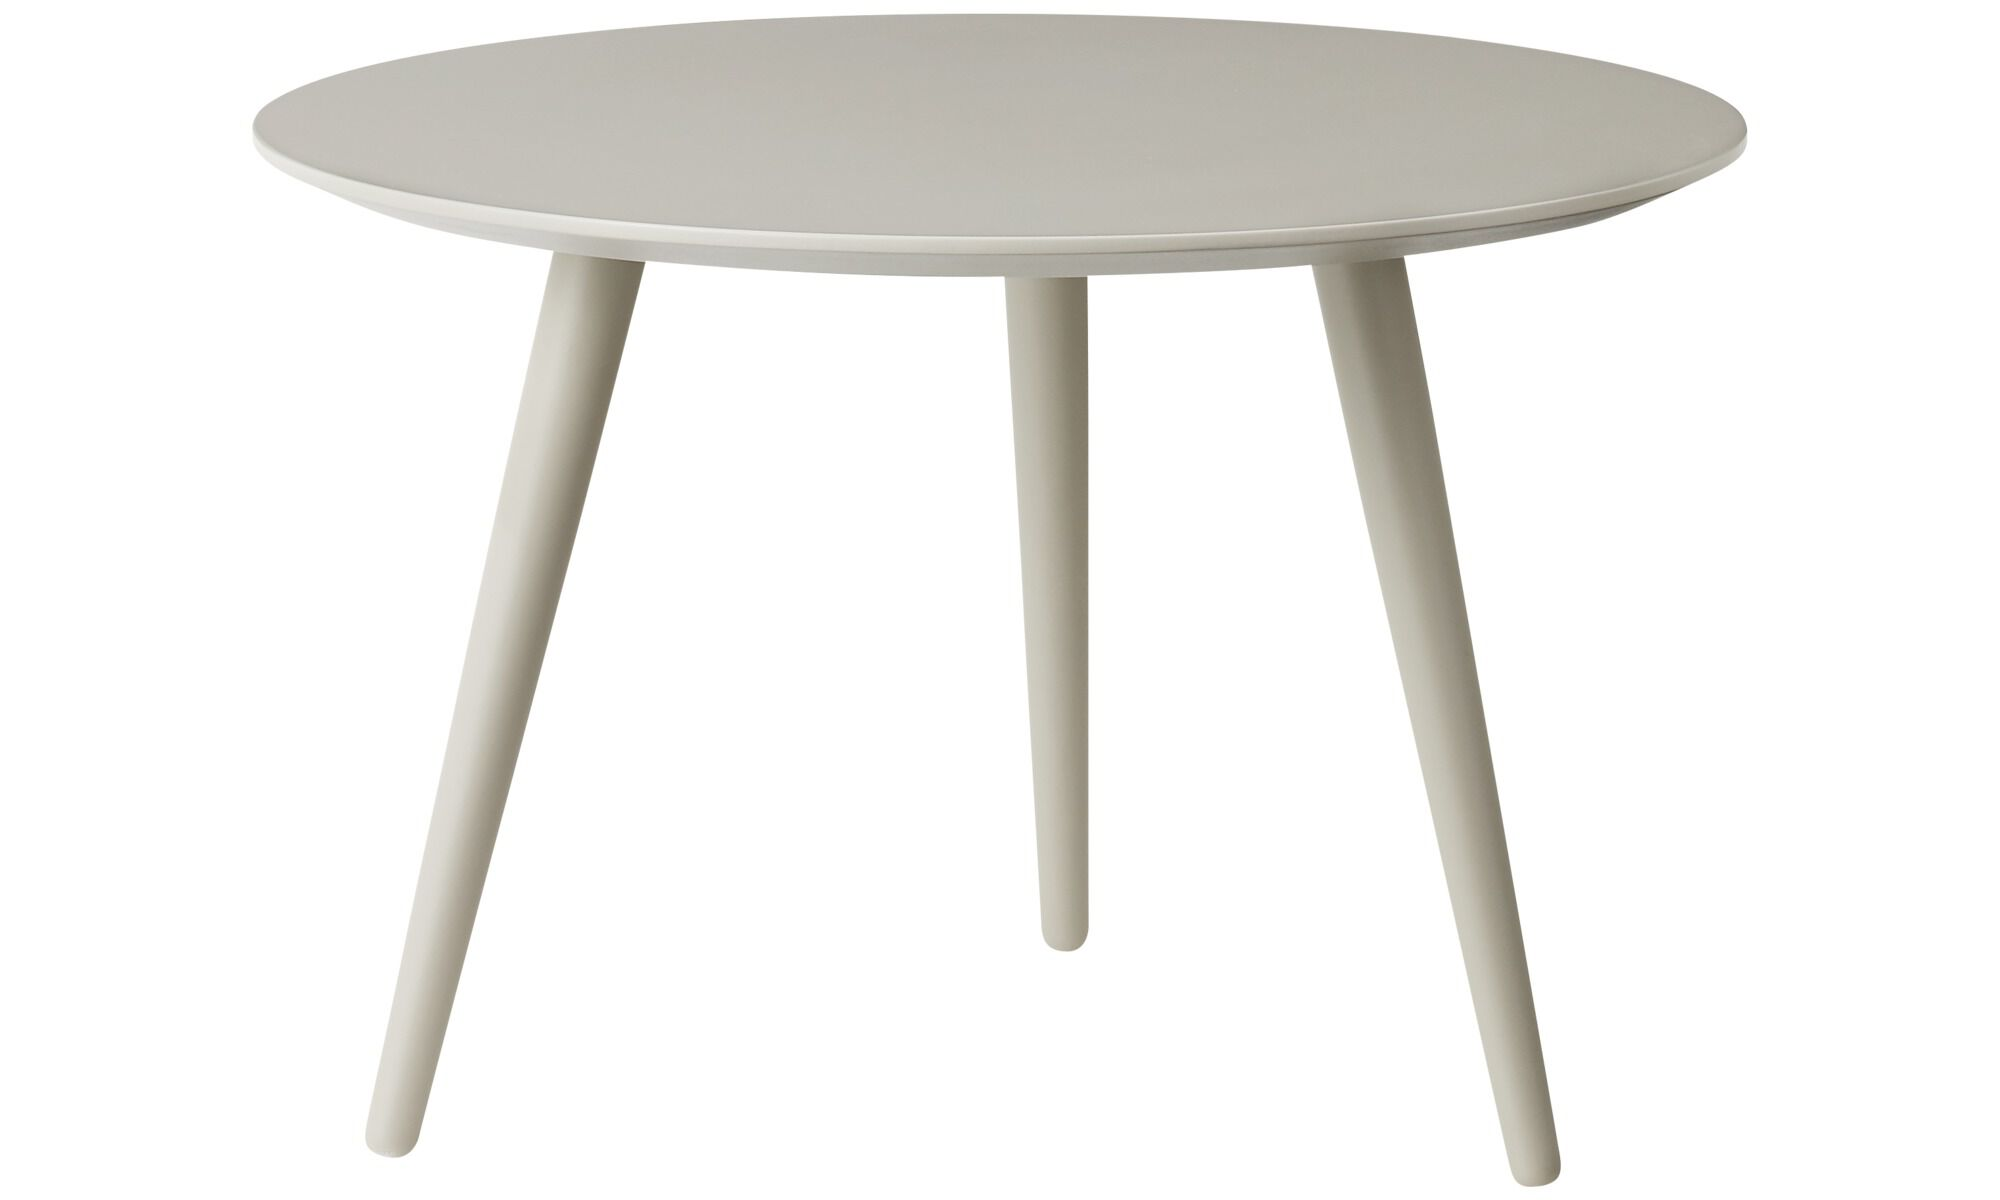 Modern Coffee Tables Contemporary Design from BoConcept